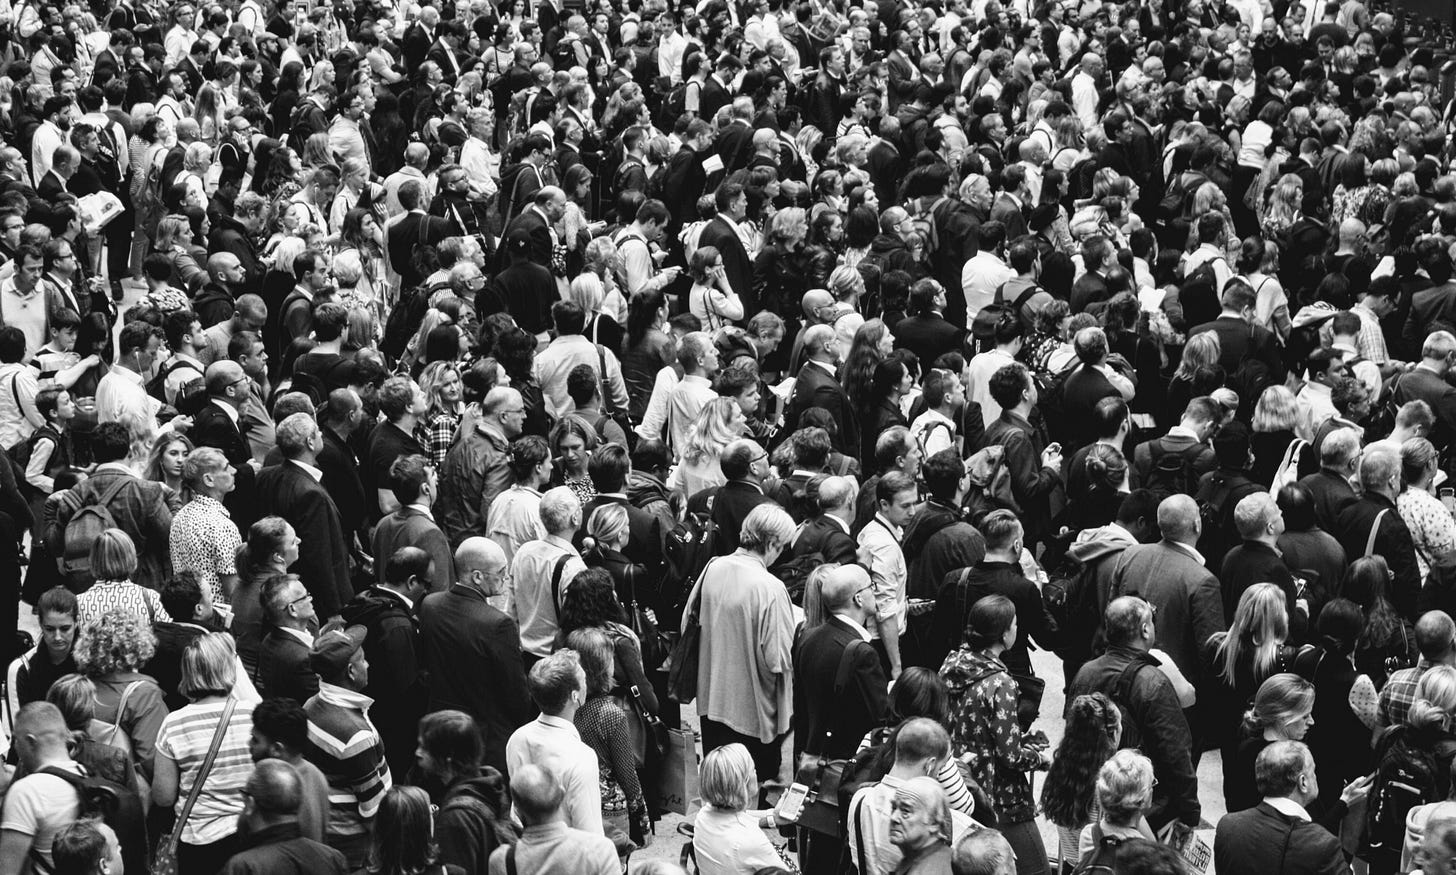 black and white image of a crowd for article by Larry G. Maguire